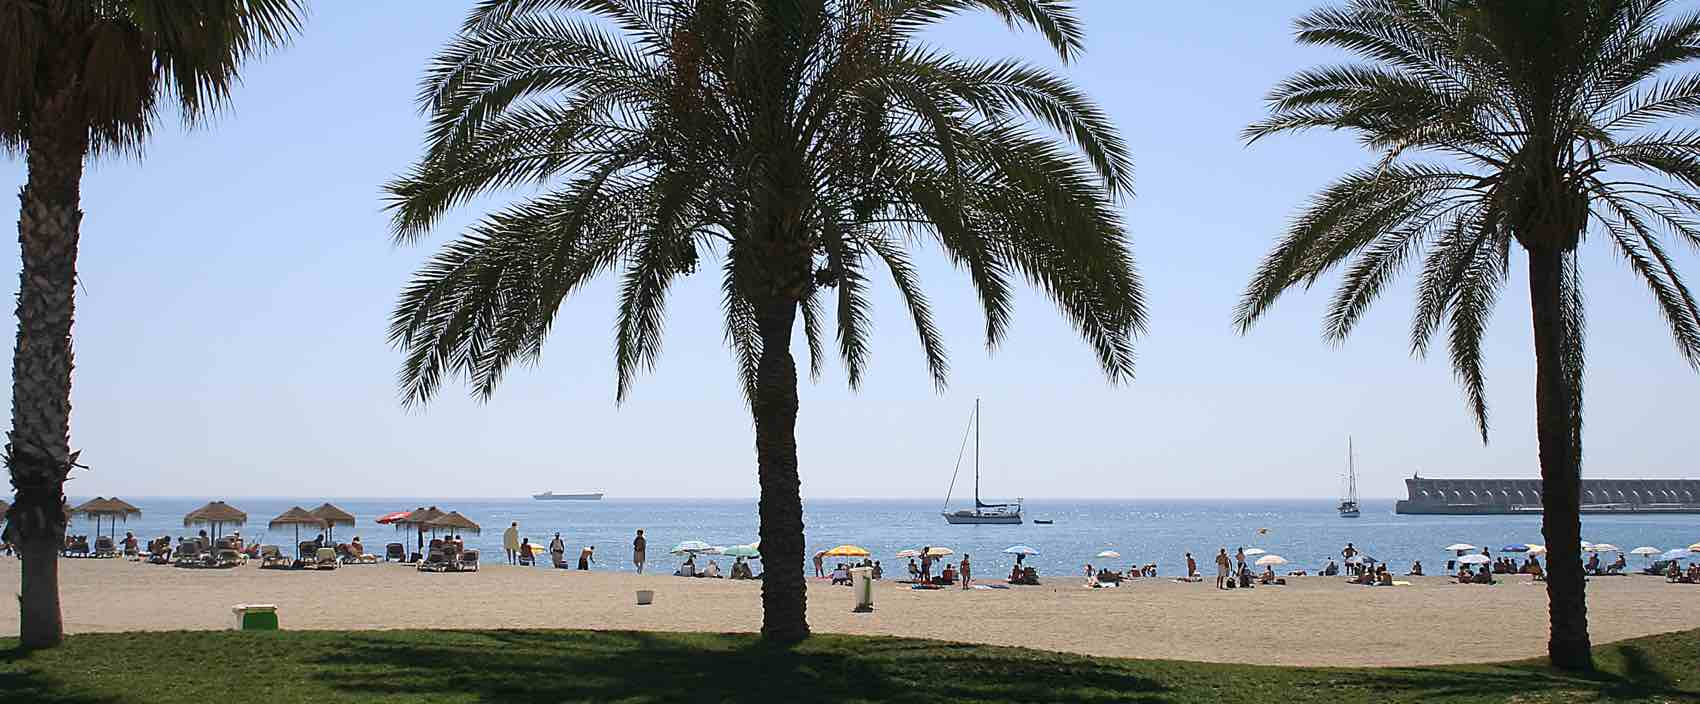 Sand in the city: Beach Malagueta is a part of the central part of Malaga